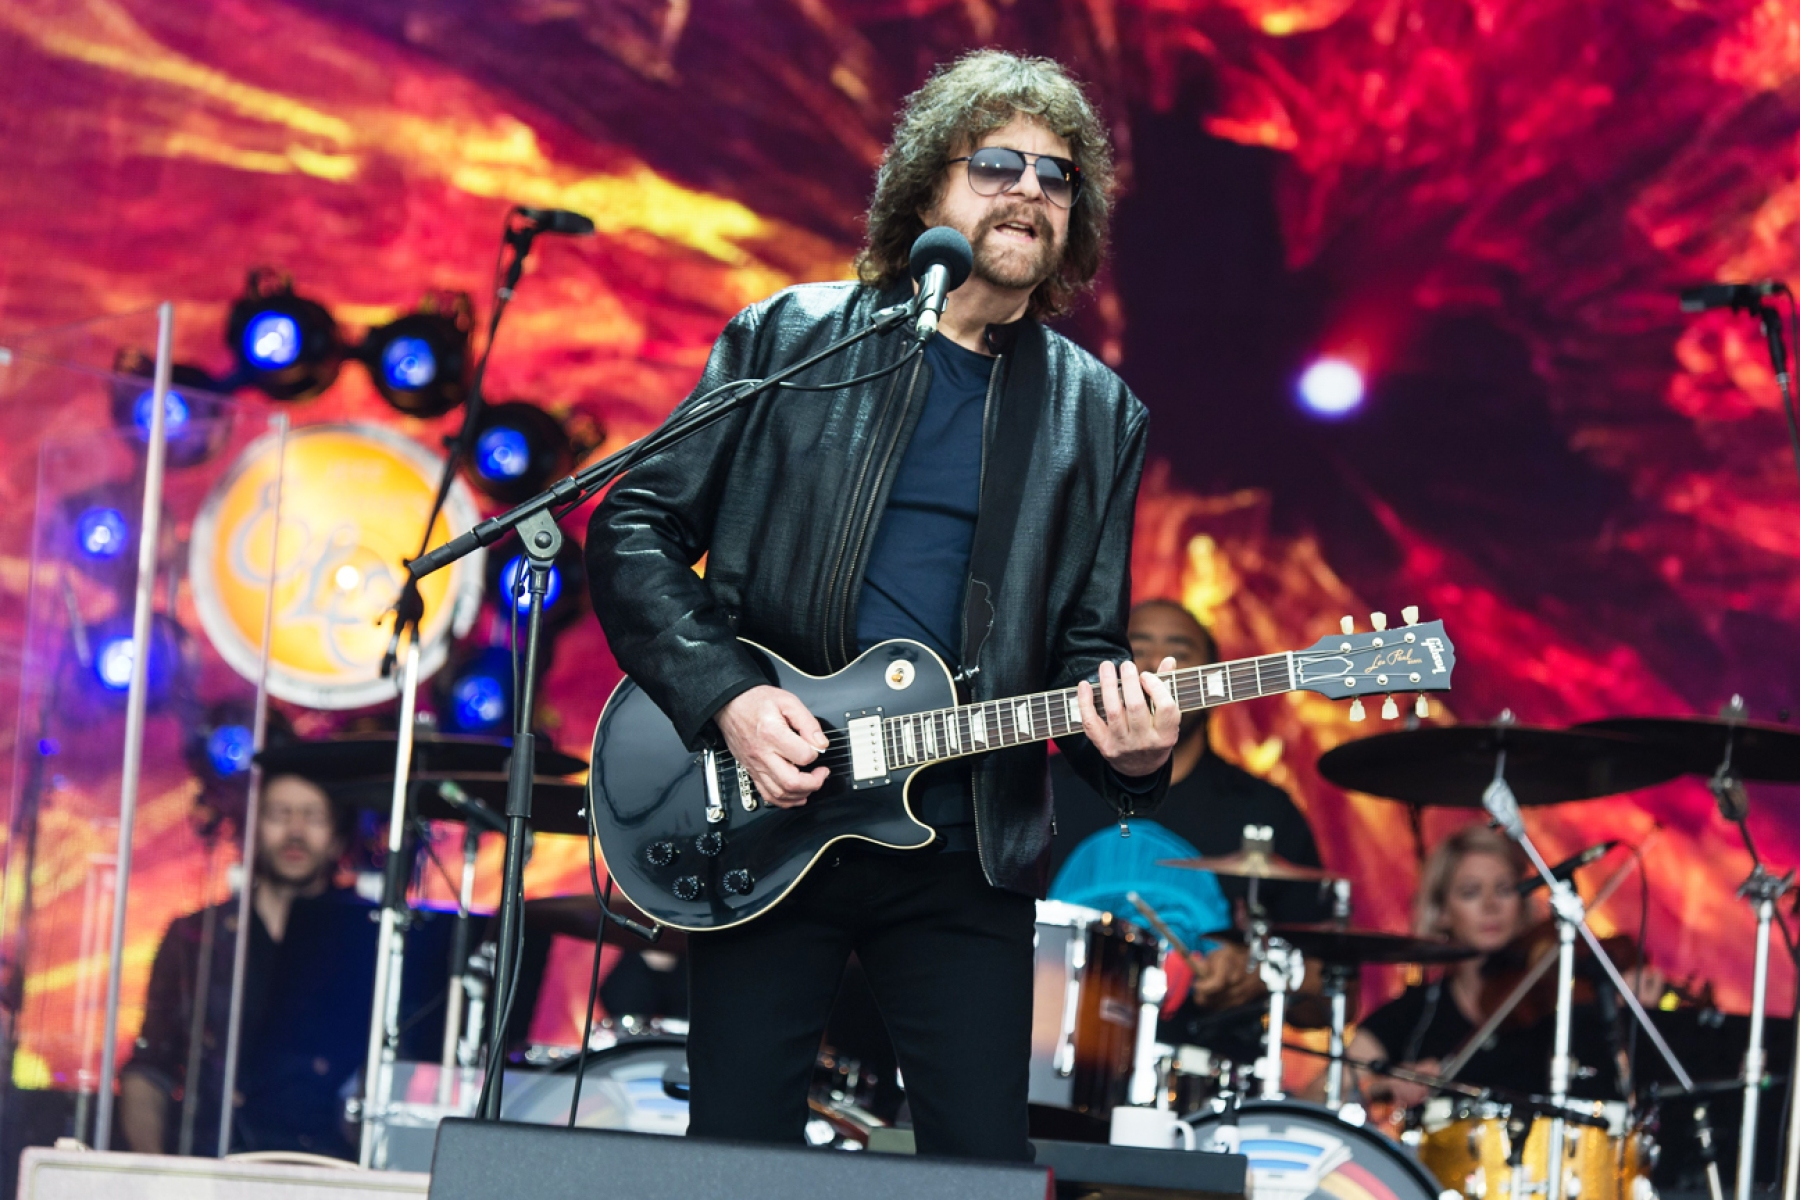 Jeff Lynne's ELO Route 2019 North American Summer Tour - Rolling Stone